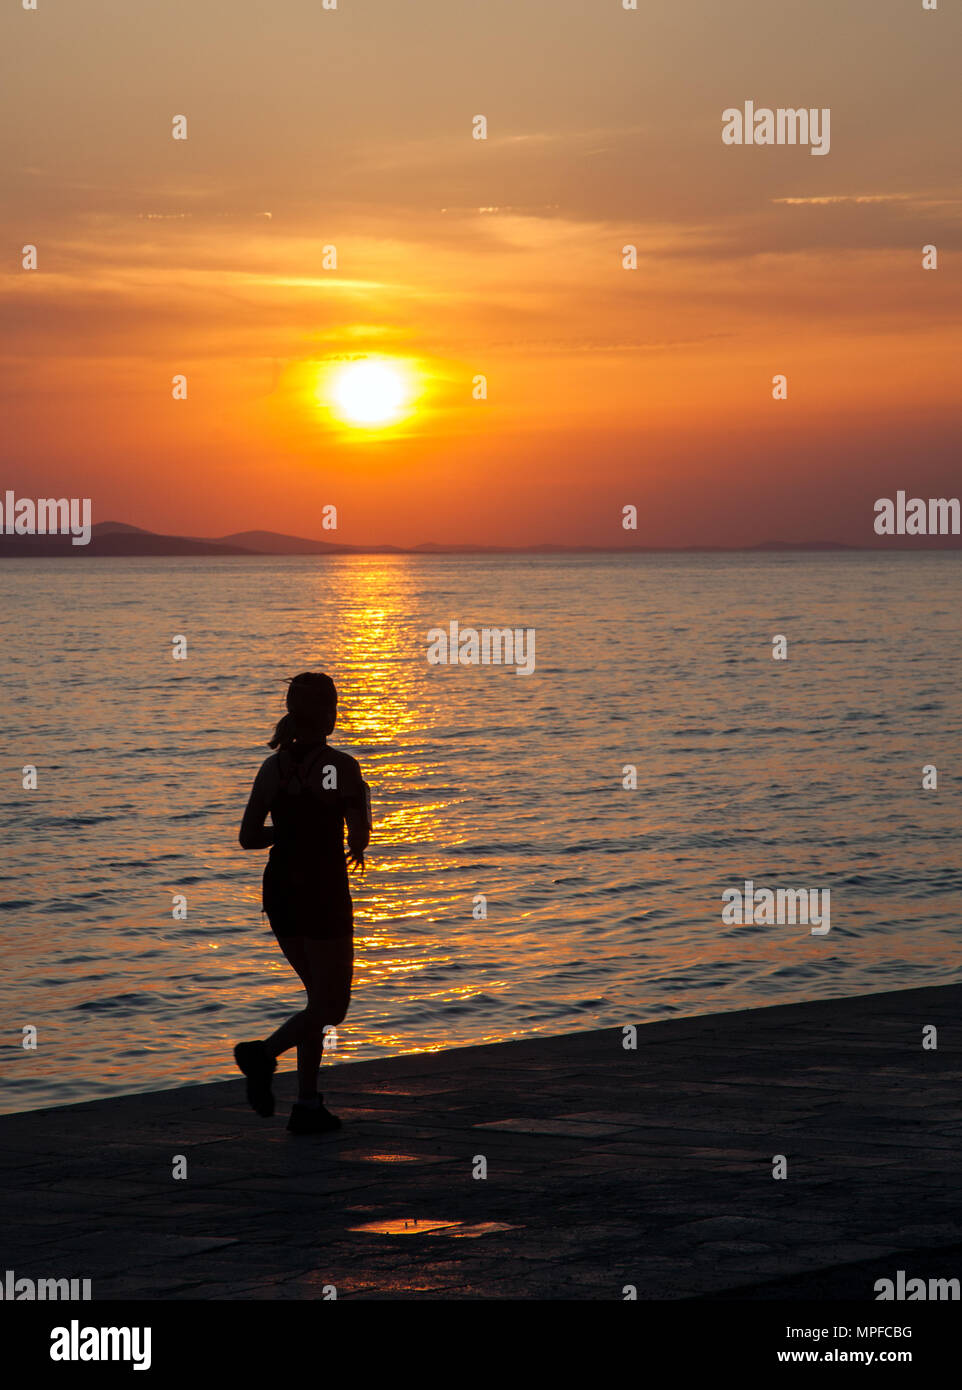 Girl running into the beautiful glorious golden red and orange vivid vibrant sunset over the sea at the port of Zadar on the Adriatic coast Croatia - Stock Image